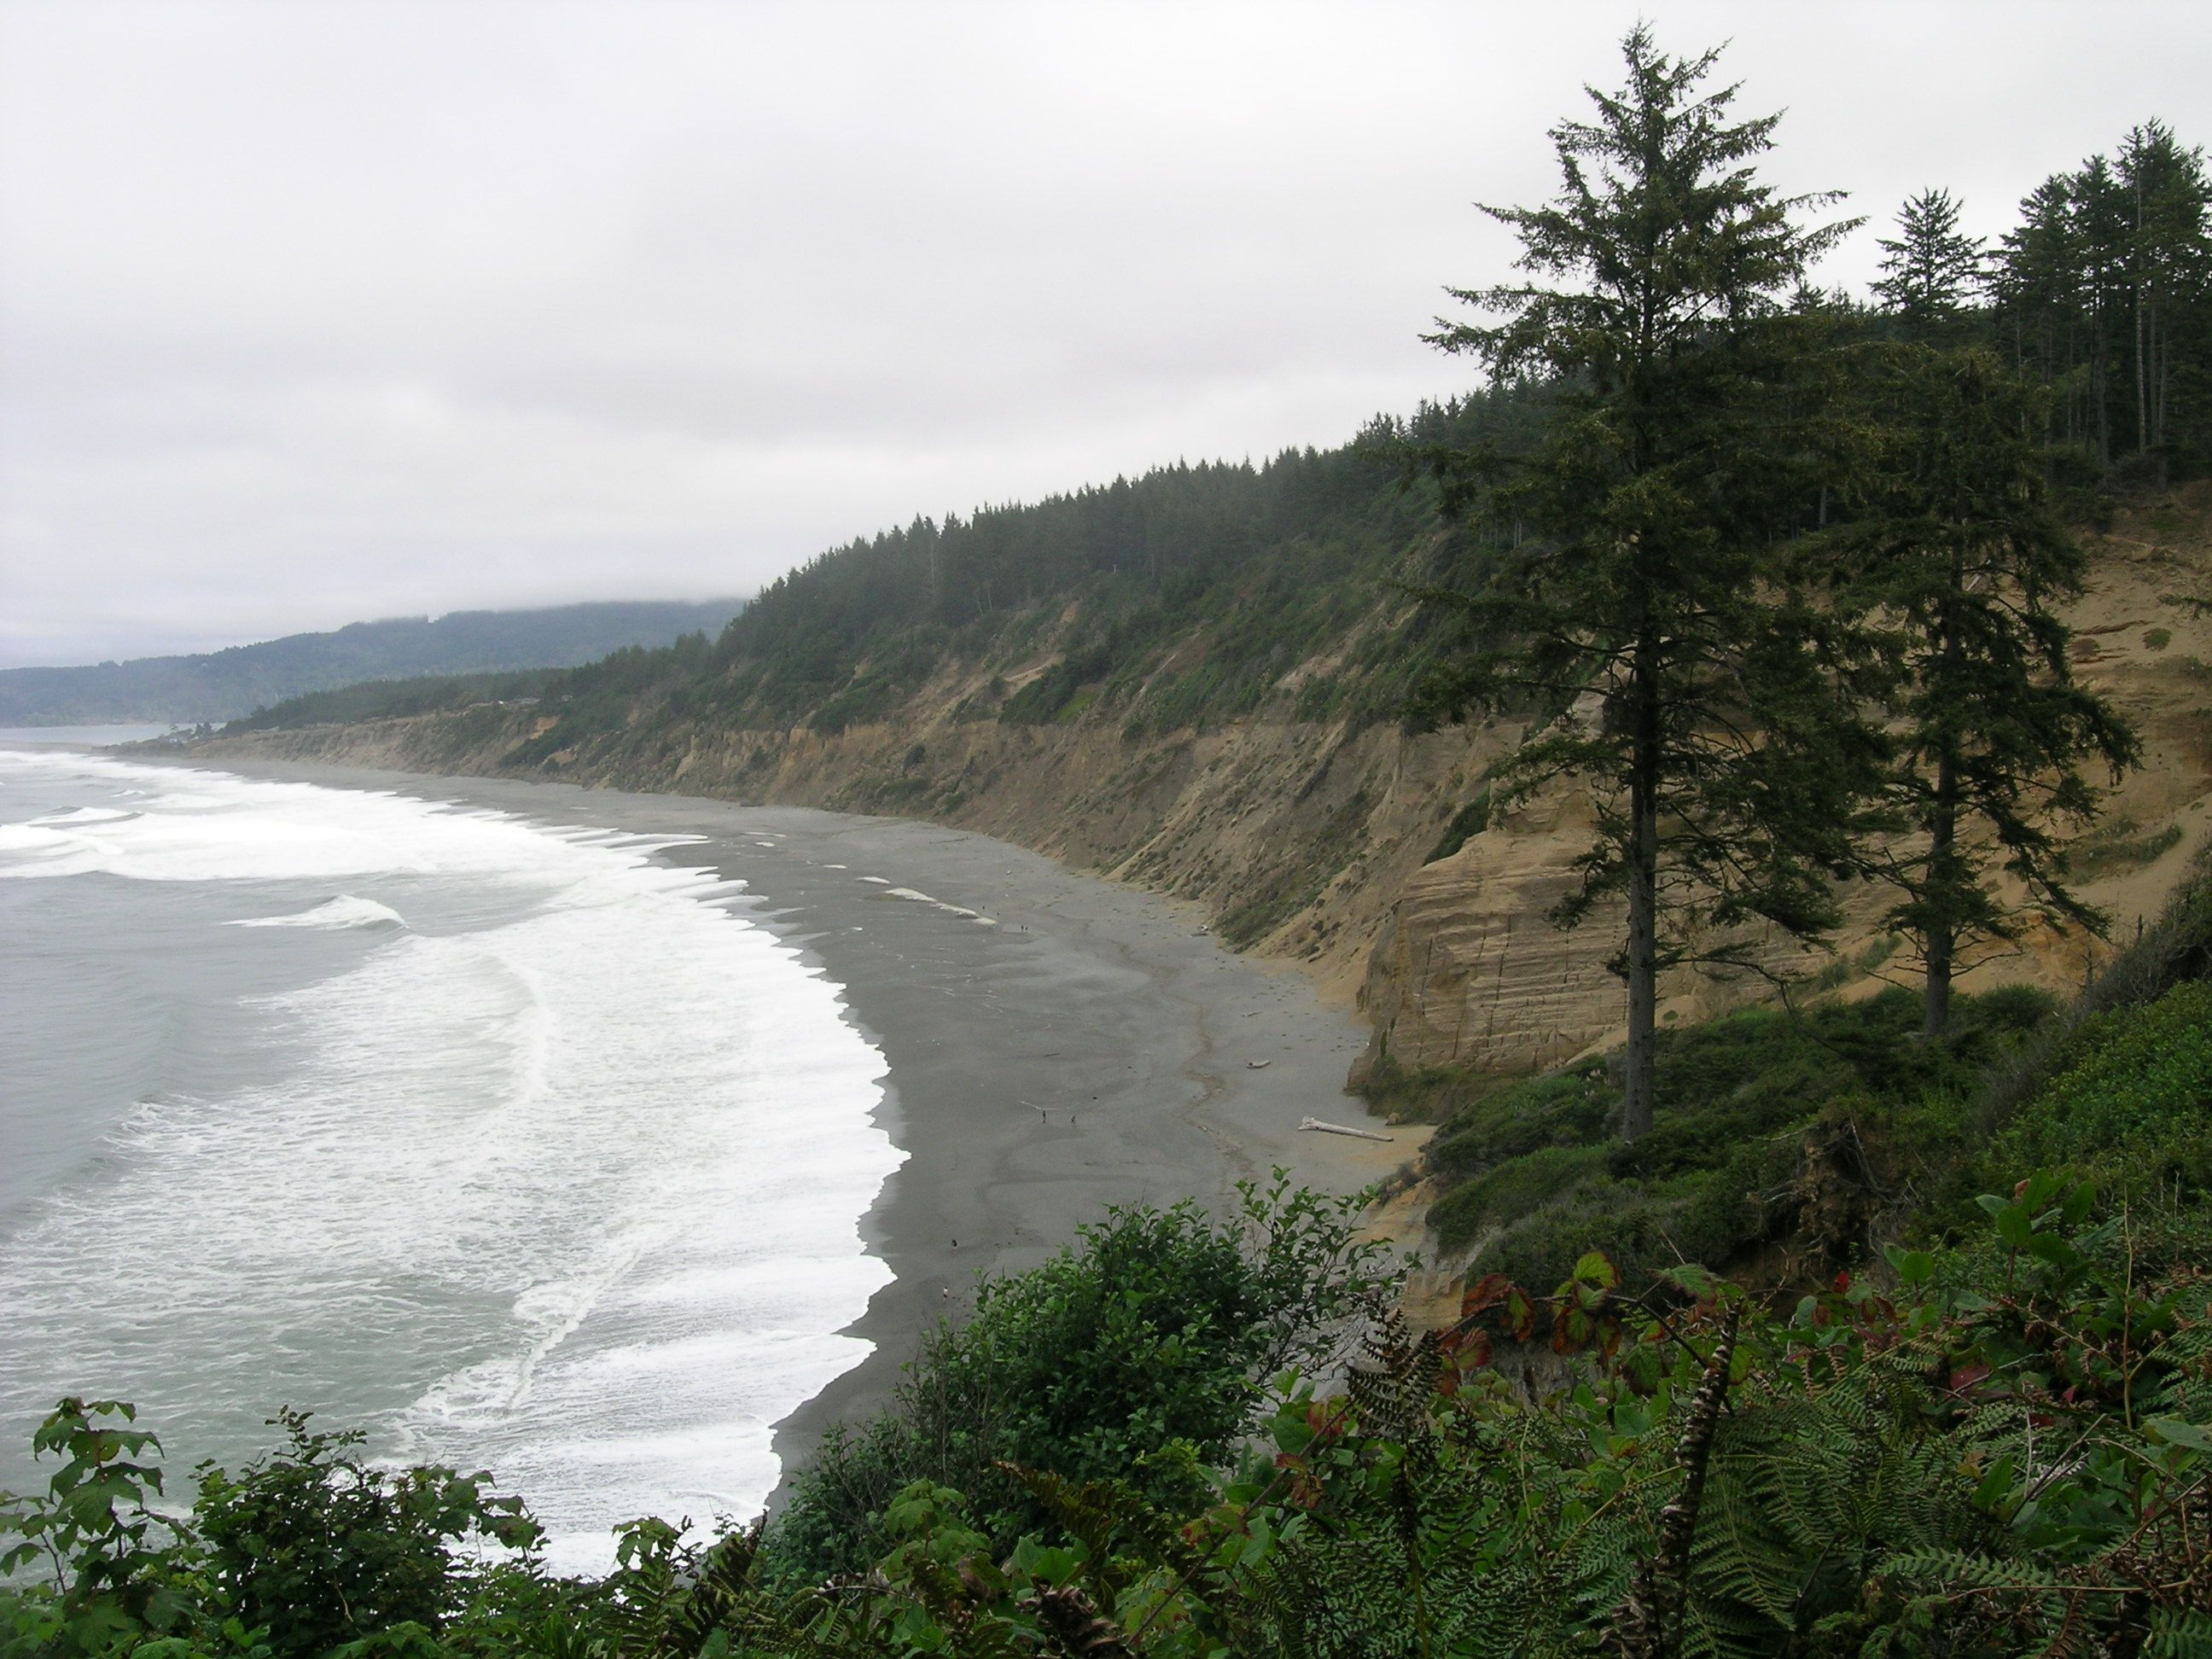 The Agate Beach Trail Head Is Within Patrick S Point State Park On Far Side Of Campground Parking